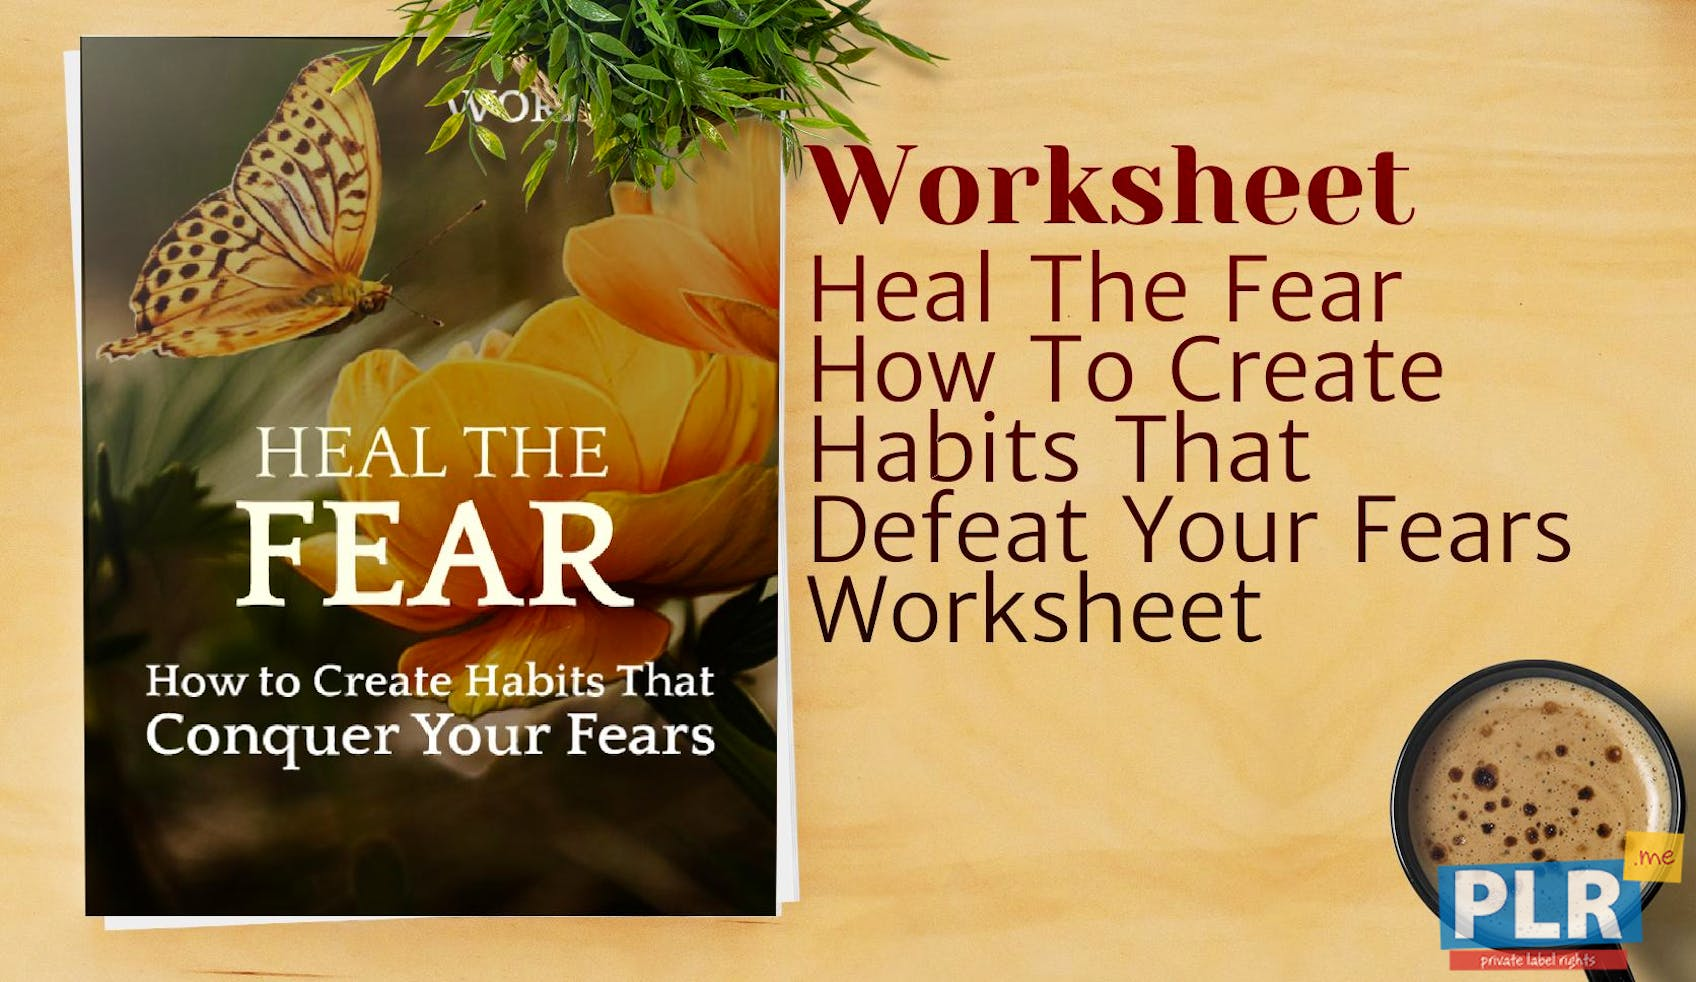 Heal The Fear How To Create Habits That Defeat Your Fears Worksheet